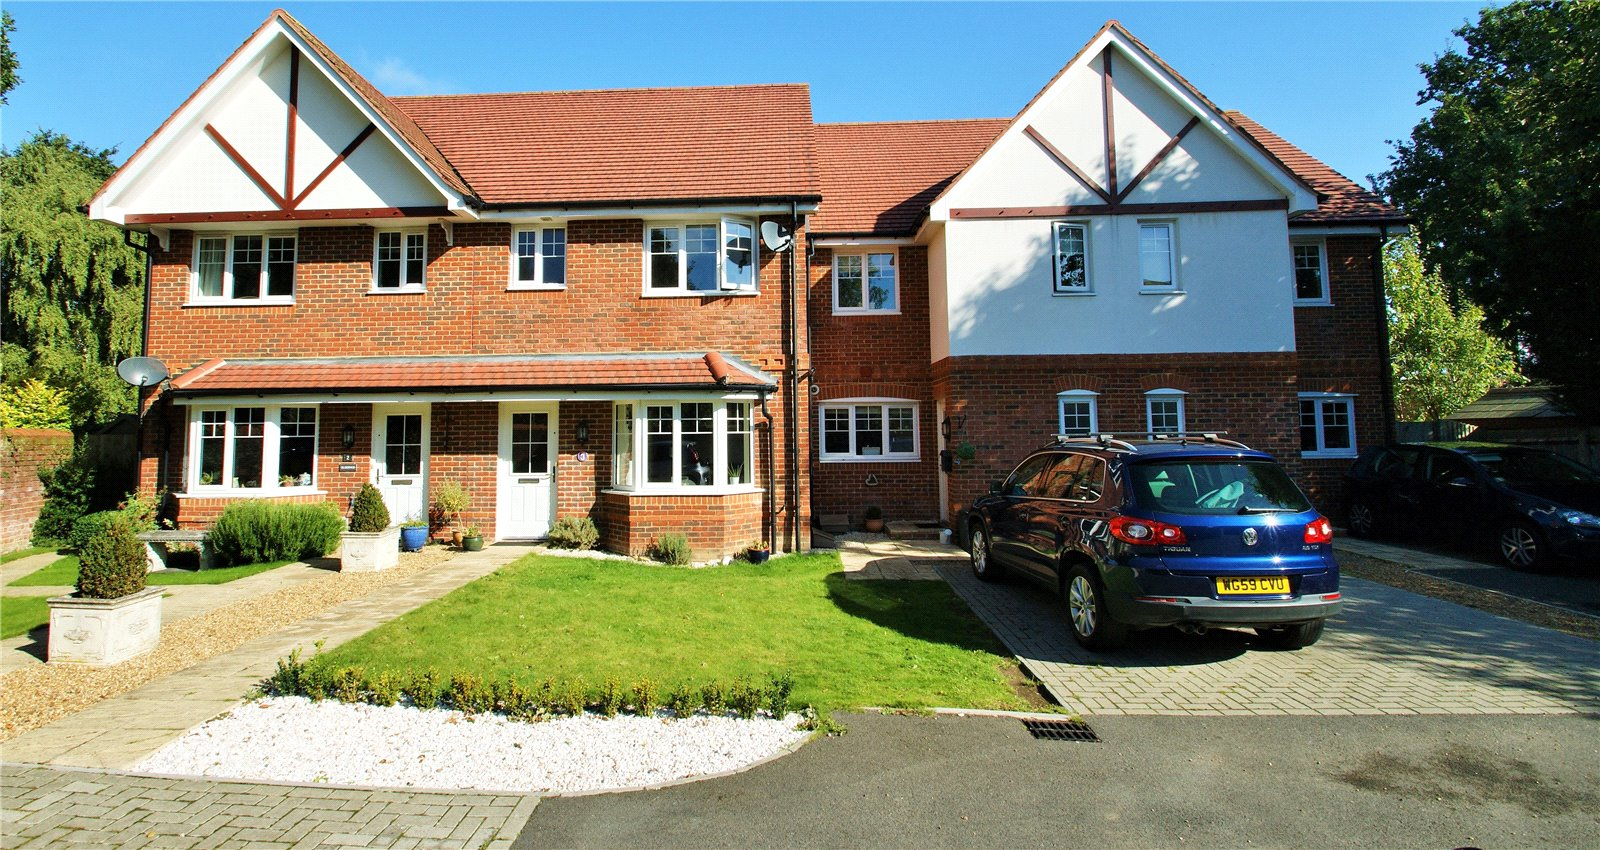 3 Bedrooms Terraced House for sale in Kerr Gardens, London Road, Wokingham, Berkshire, RG40